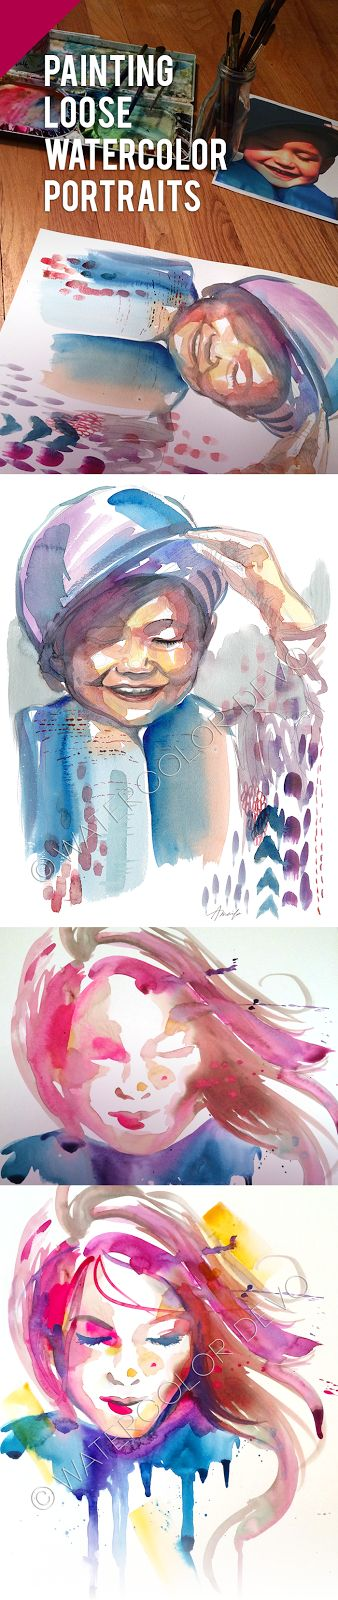 Watercolor Devo BLOG: How to Paint Loose Watercolor Portraits